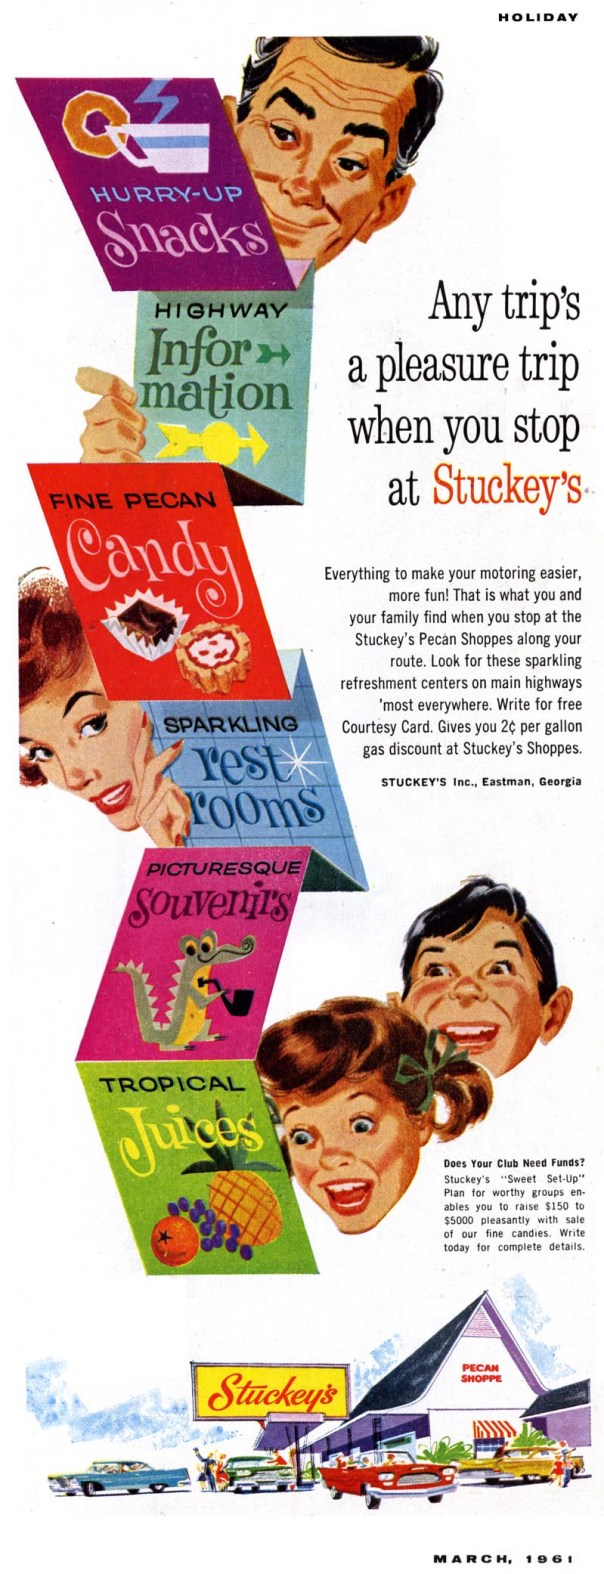 Stuckey's - published in Holiday - March 1961